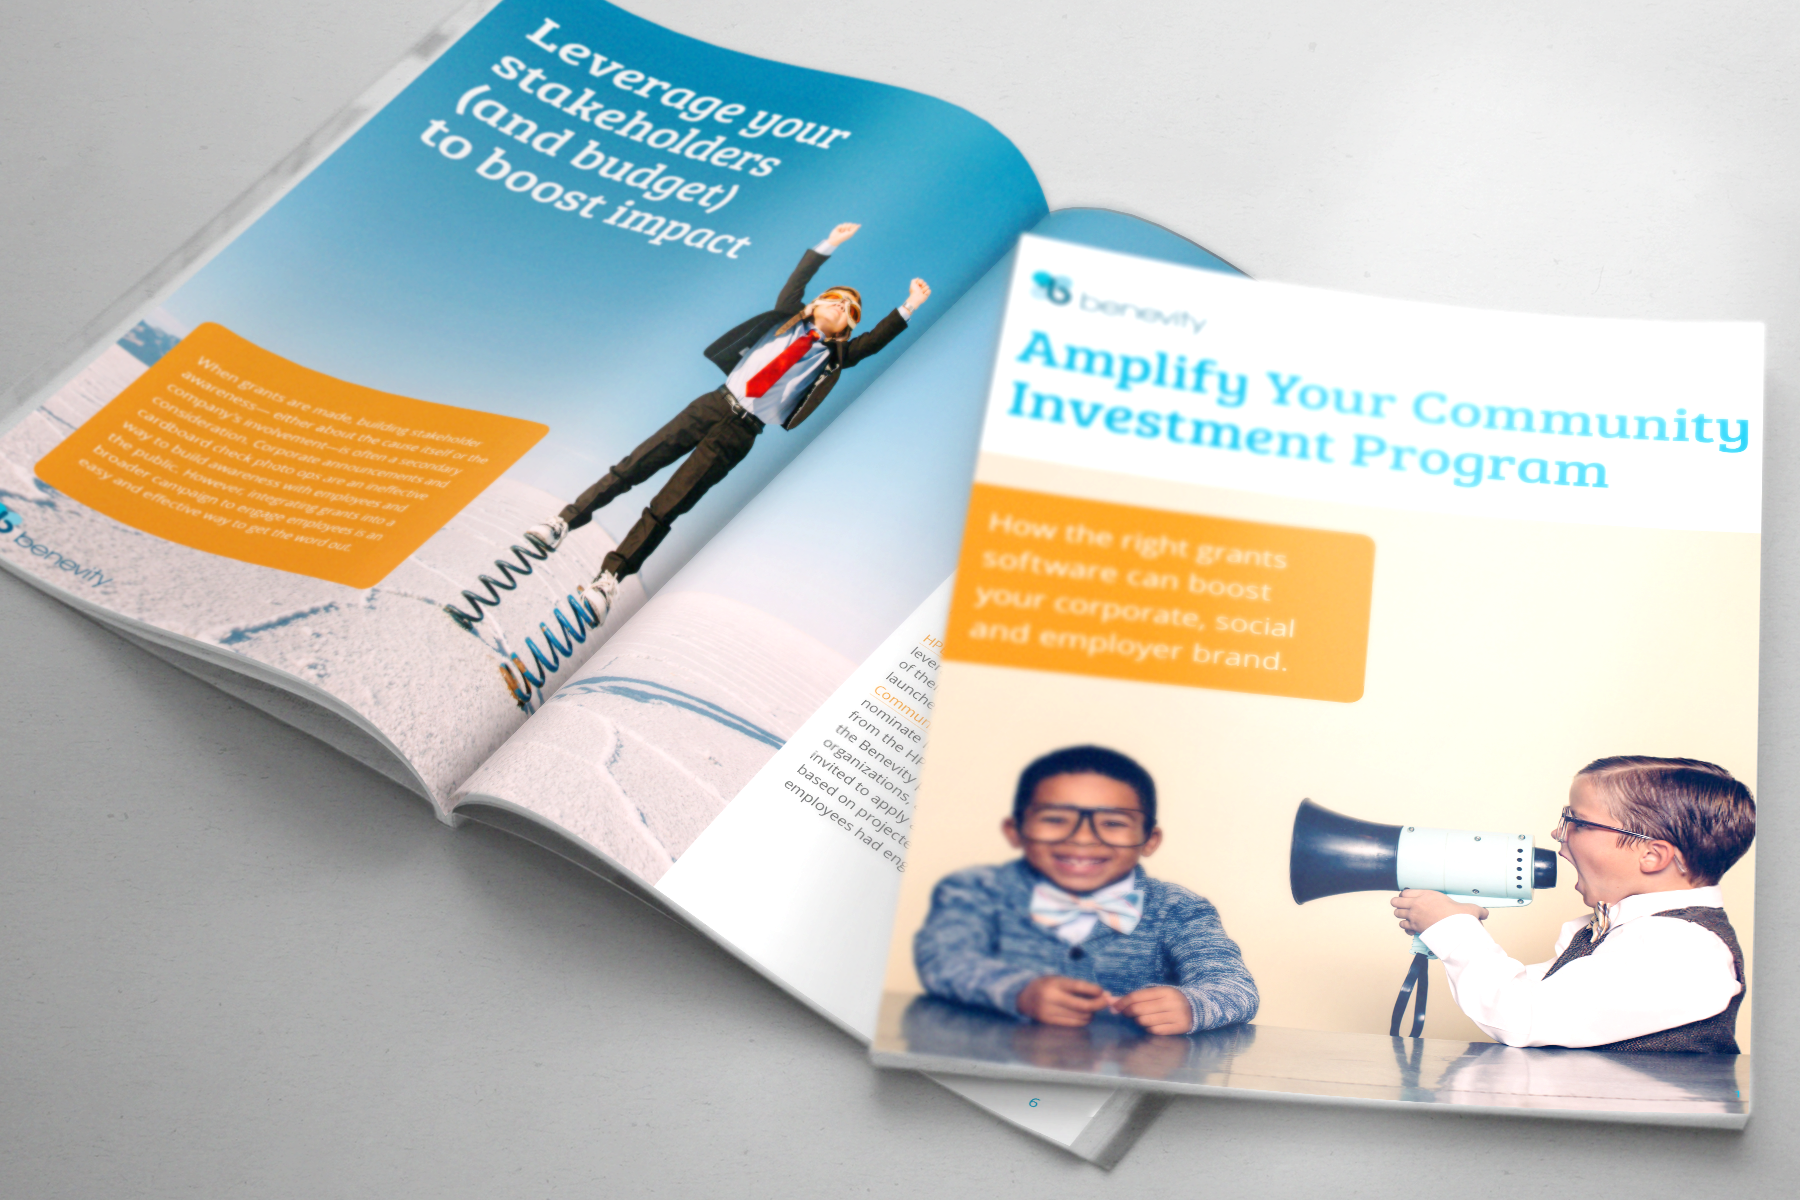 Benevity: Amplifying Your Corporate Community Investment 2017 - The ebook illustrates the power behind taking a holistic approach to strategy, de-siloing community and employee initiatives, combining budgets and bringing programs onto a single software platform.